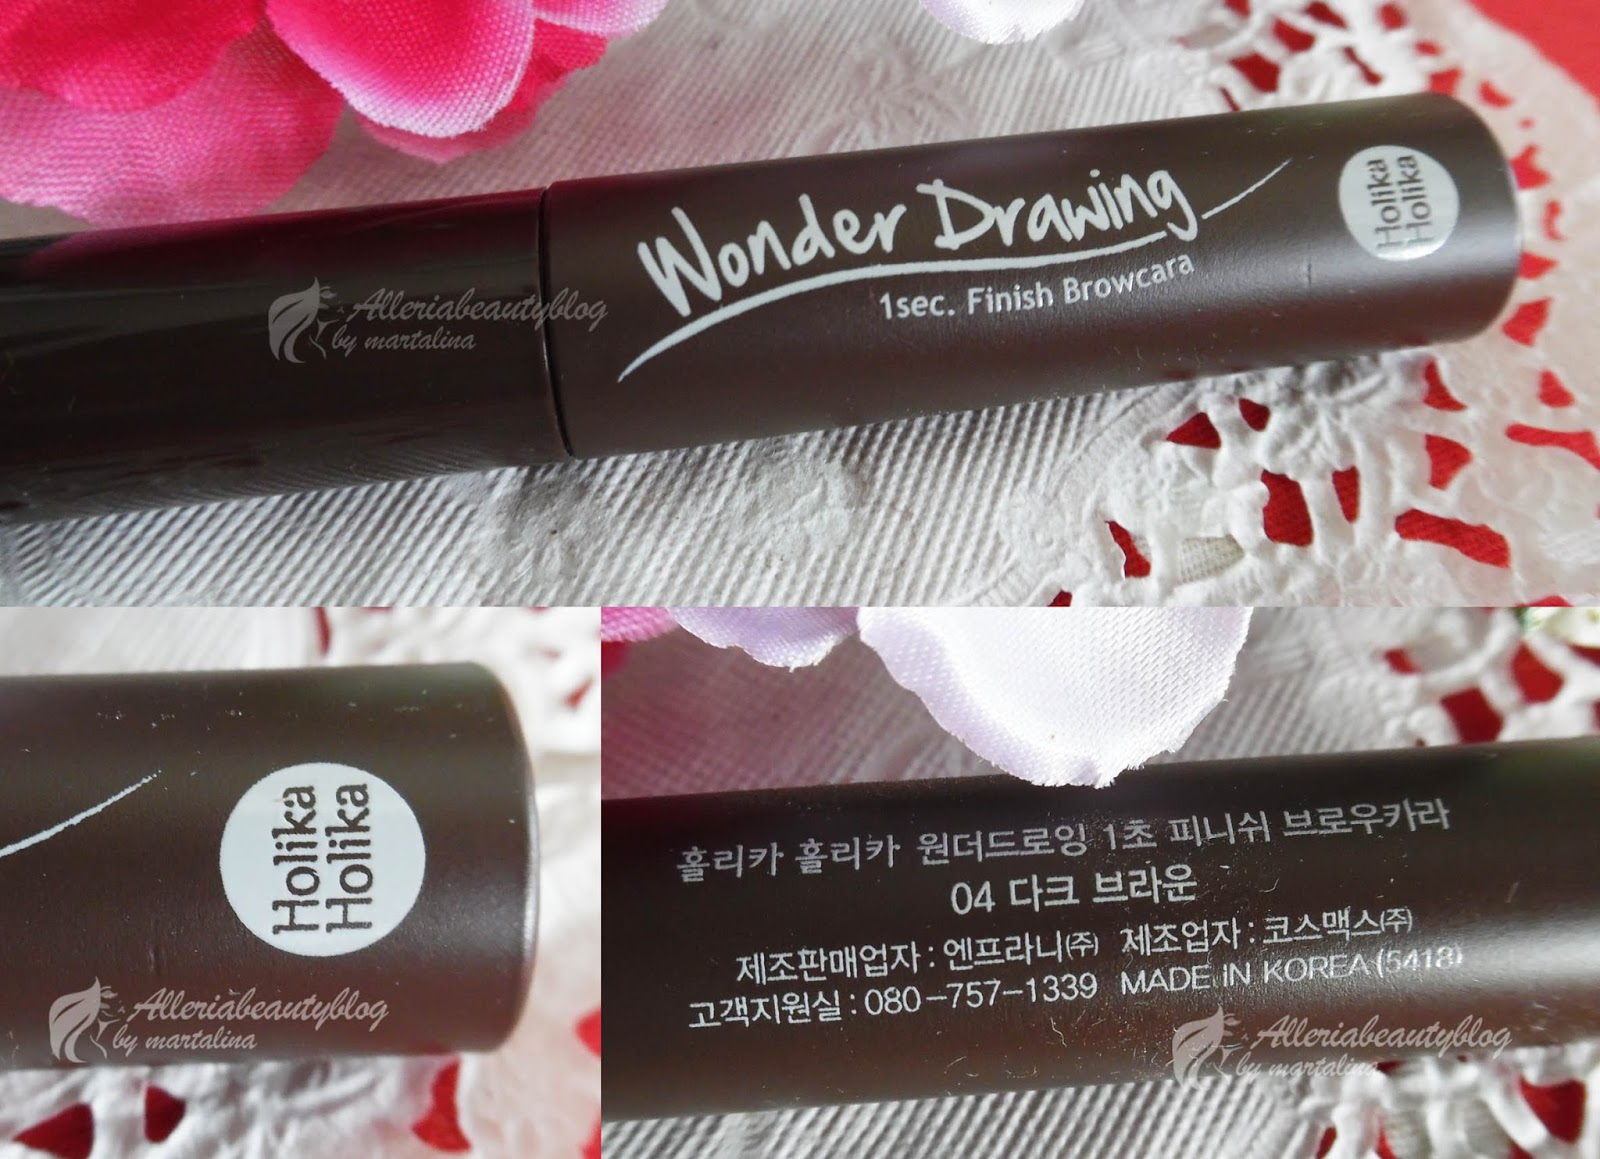 holika-holika-wonder-drawing-1sec-finish-browcara-review.jpg